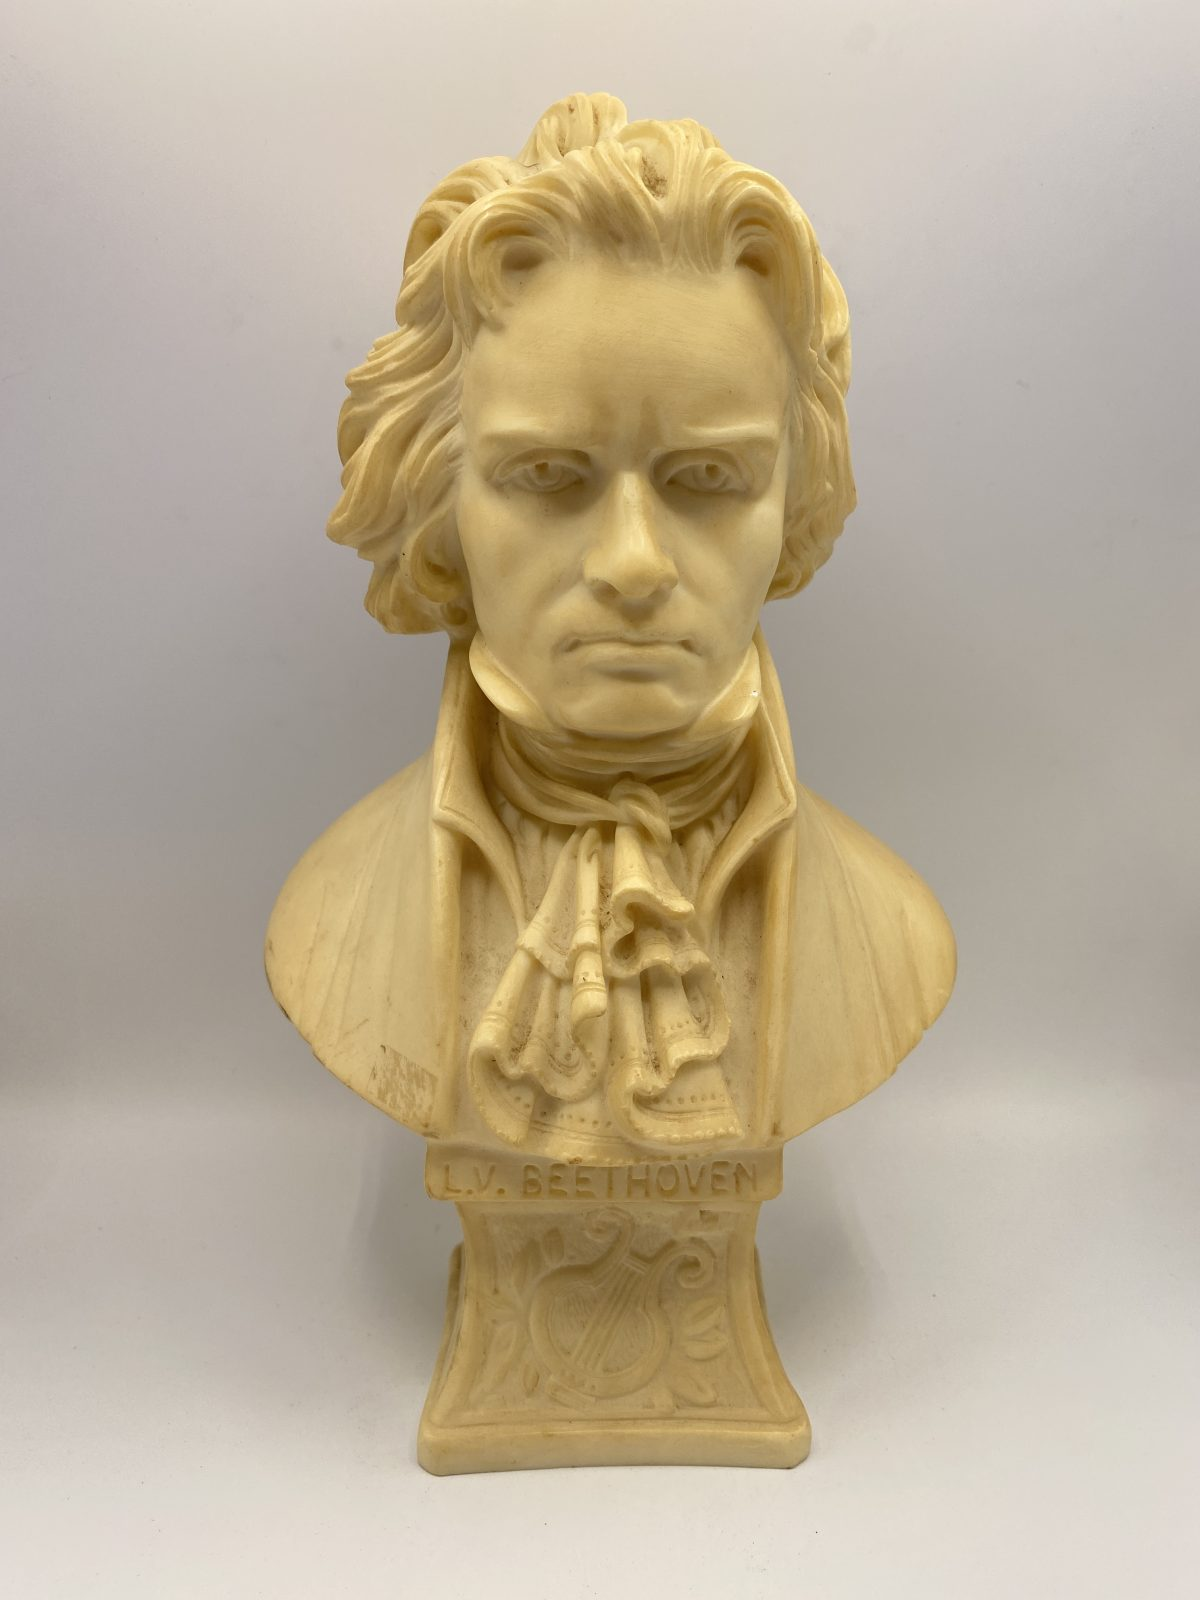 G9 - A Vintage French Alabaster Bust of Beethoven.   £42